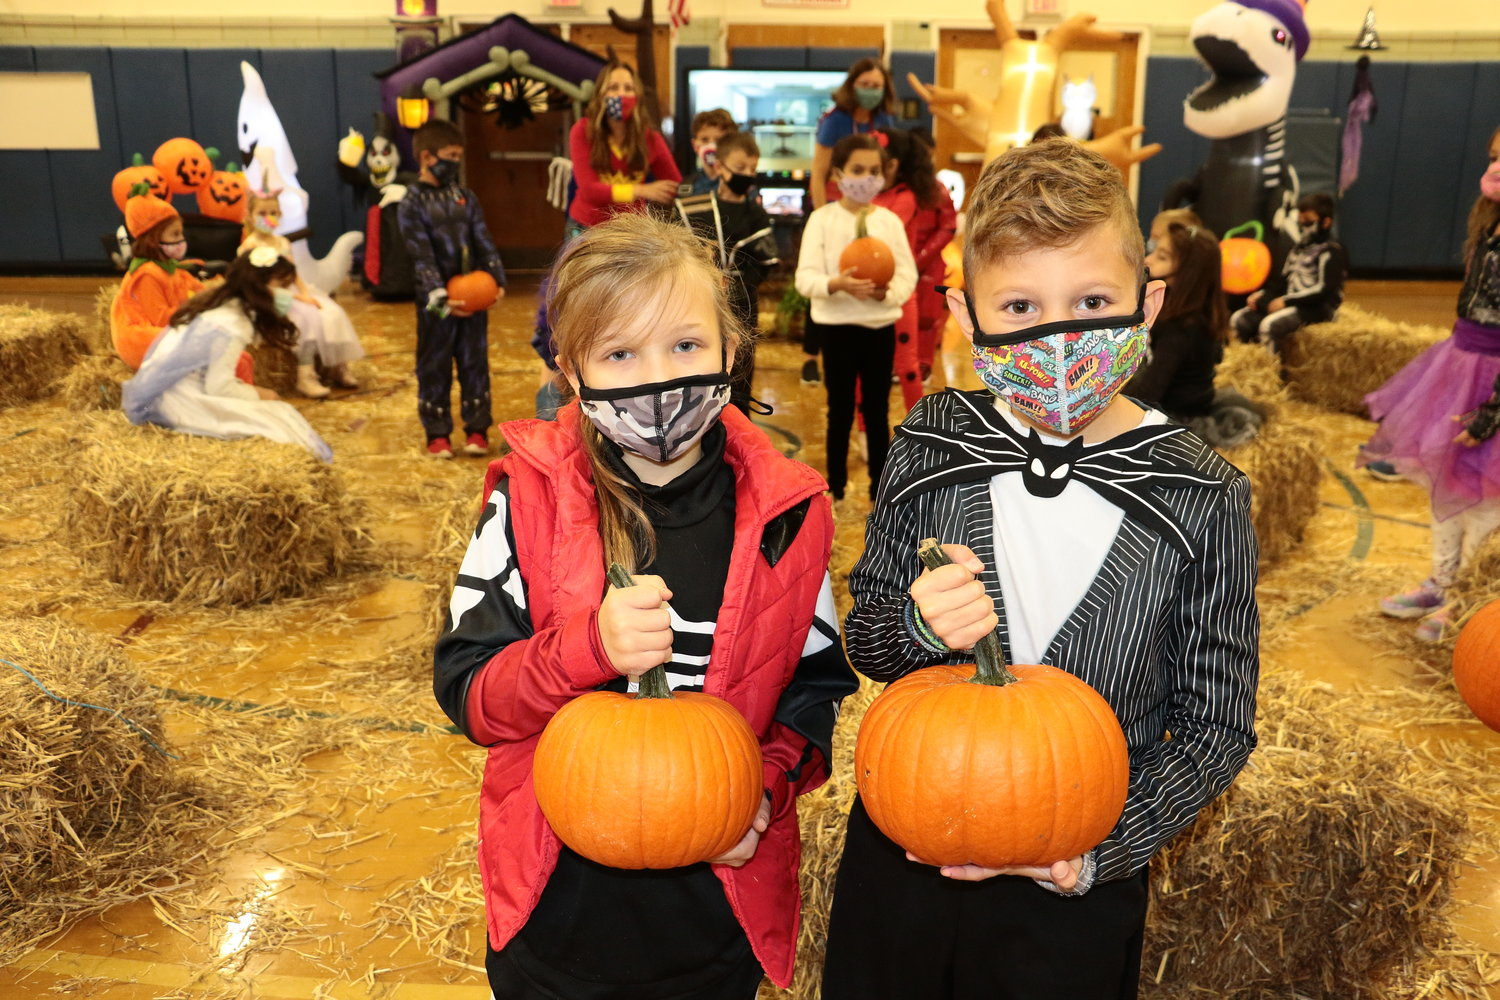 Second-graders Ciana Simoniello, left, and Andreas Koutsagelos looked their best while cruising around the pumpkin patch.